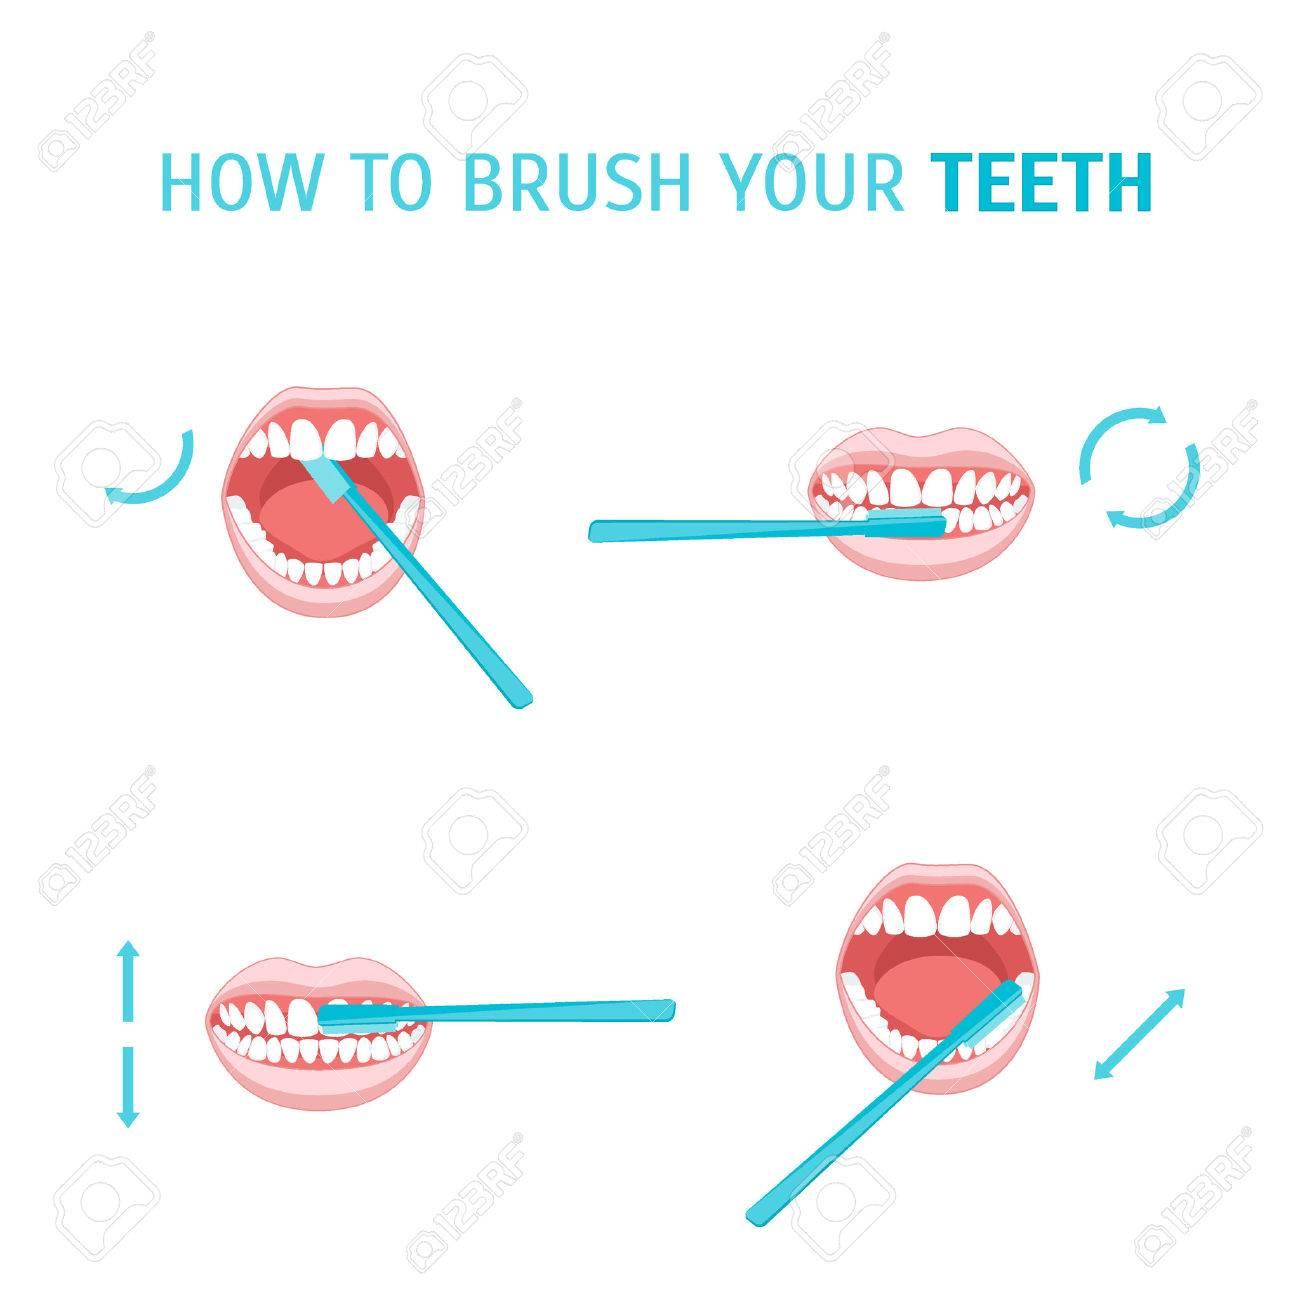 How To Brush Your Teeth. Brushing Tooth. Poster with the Instruction Manual. Order Correct Movements. Vector illustration - 64155665